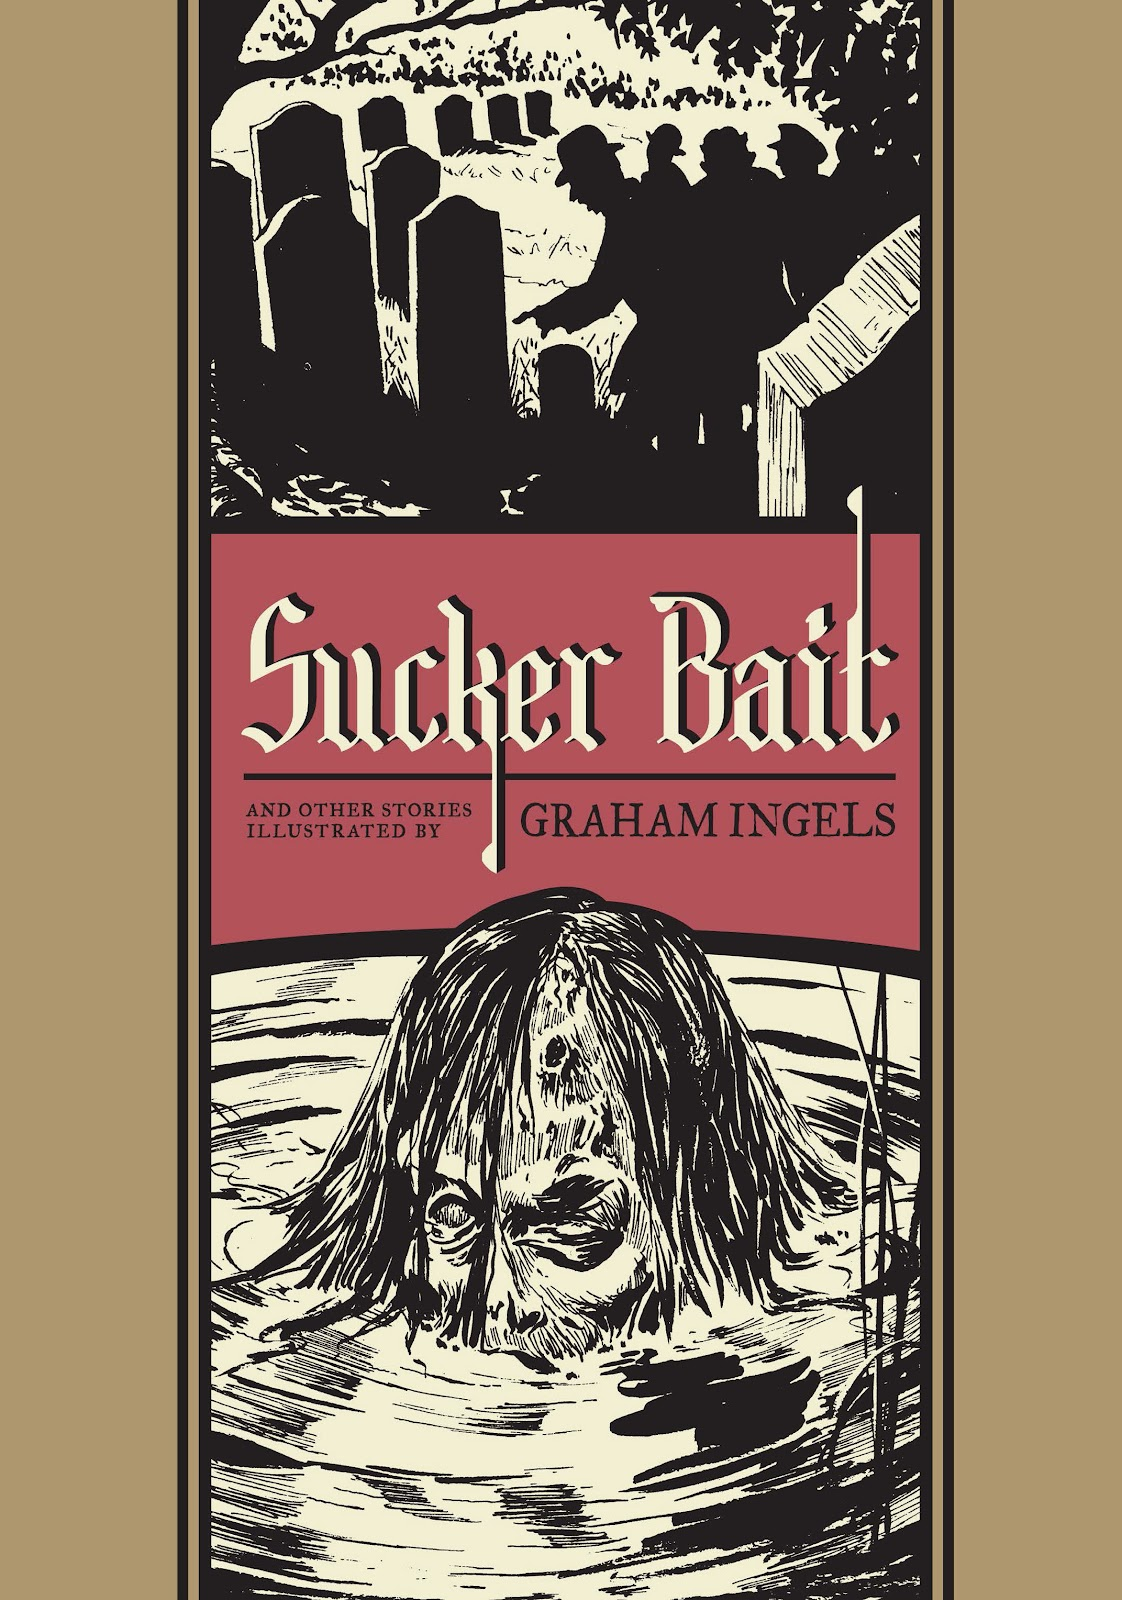 Read online Sucker Bait and Other Stories comic -  Issue # TPB (Part 1) - 1